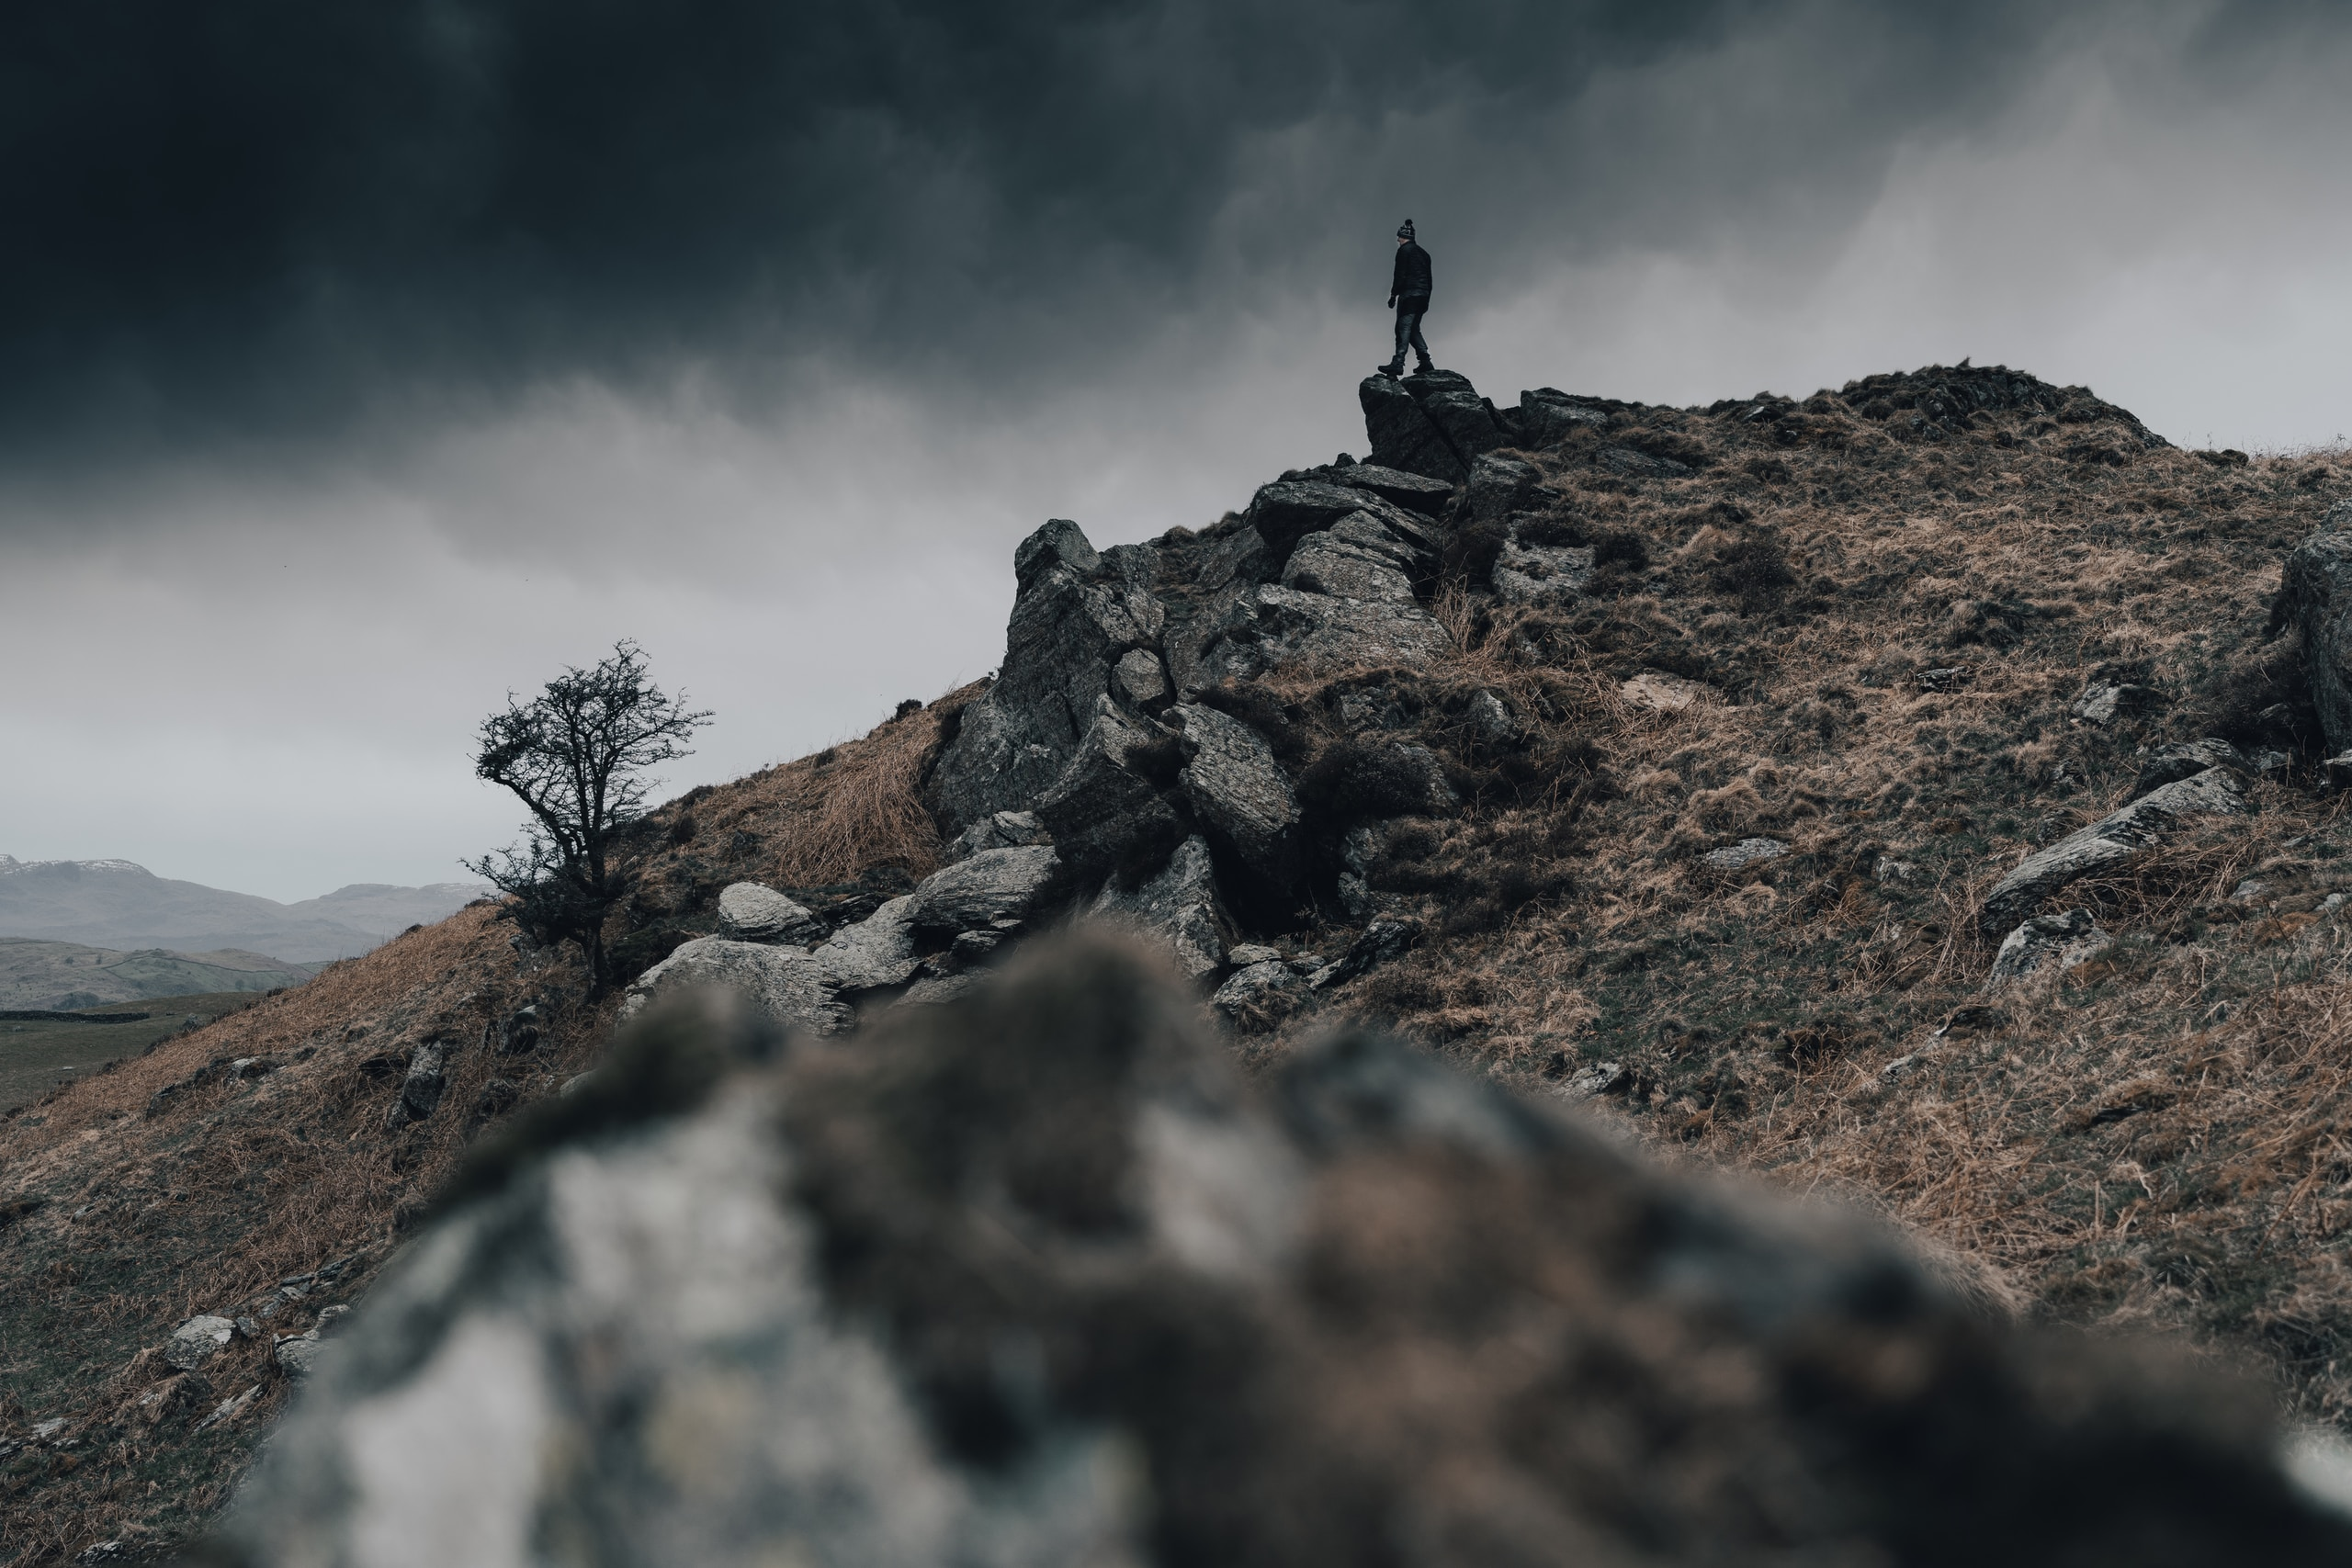 person sitting on rock under cloudy sky during daytime